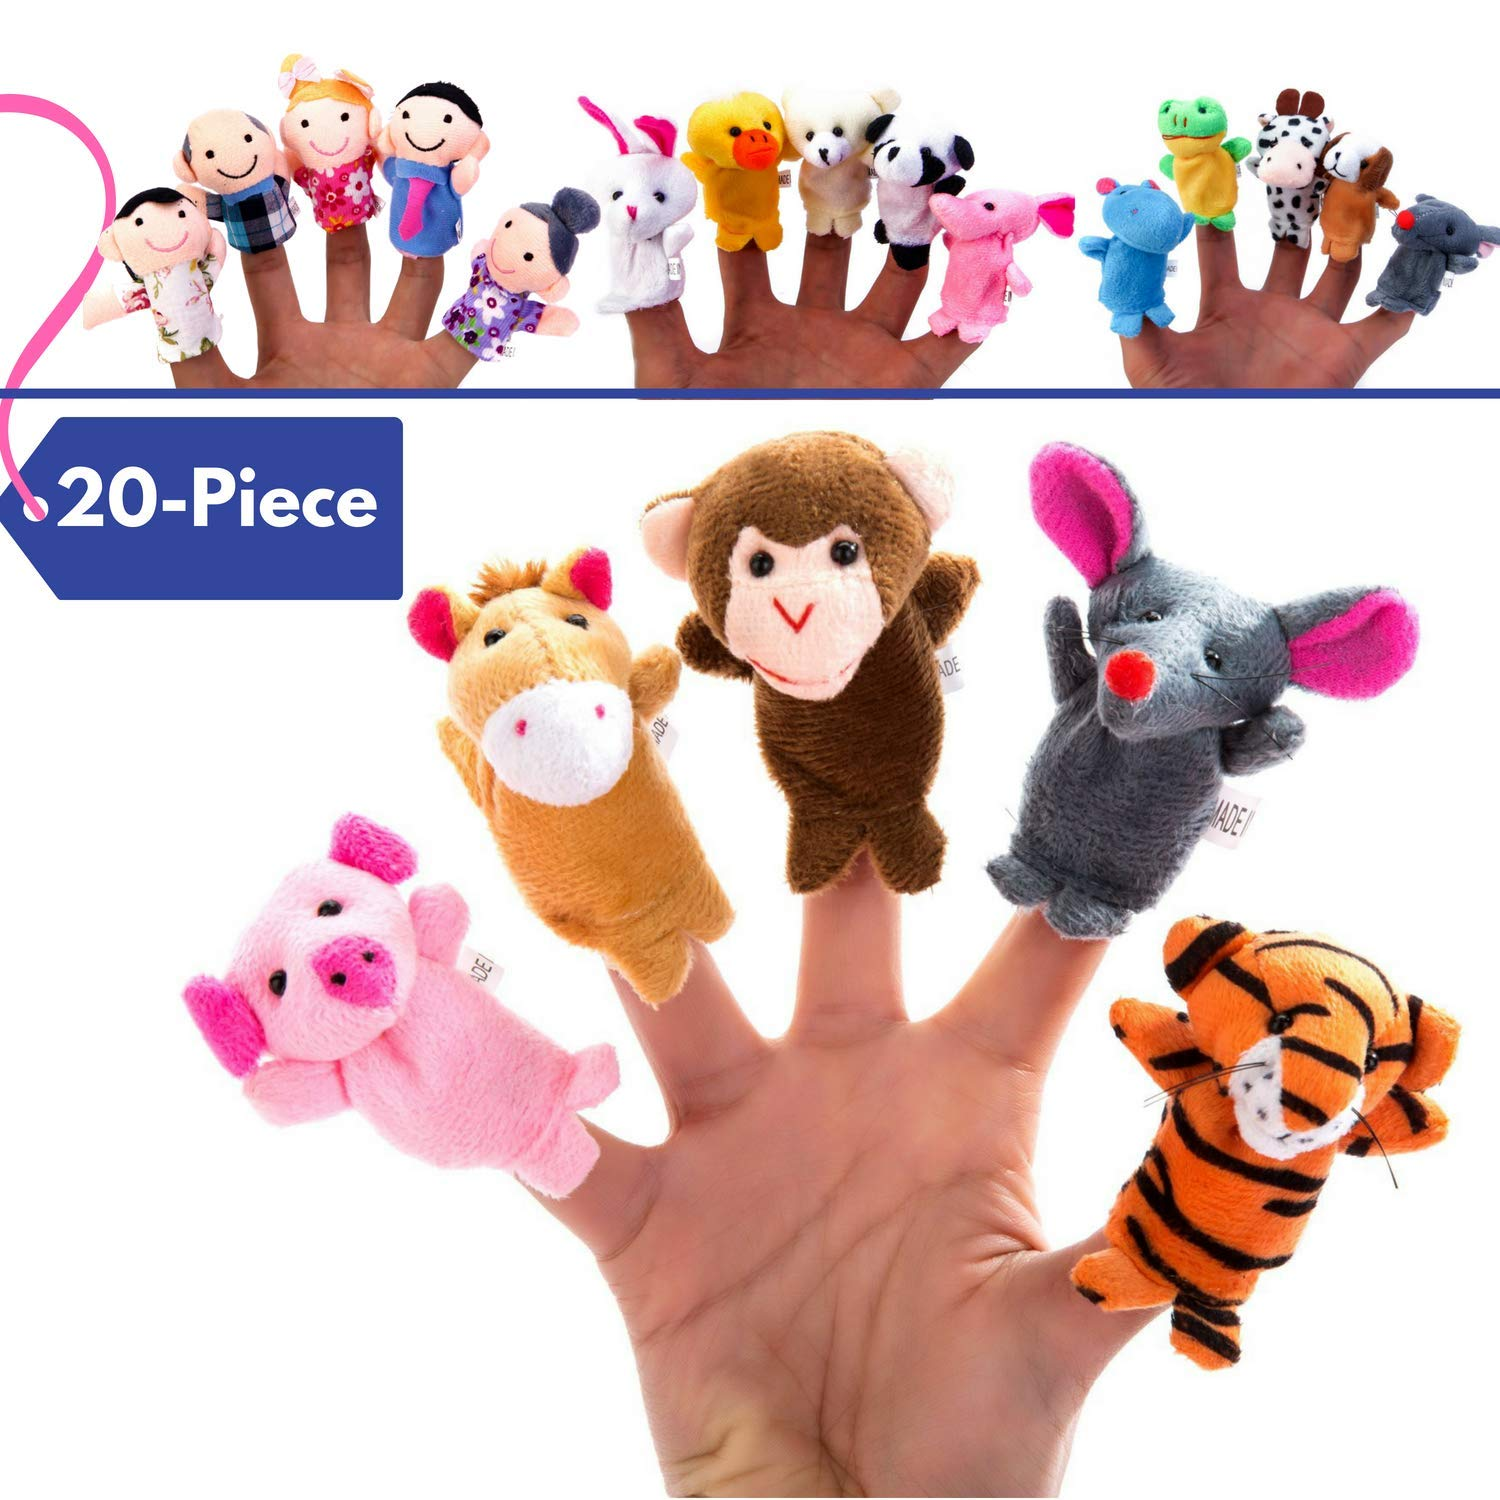 BETTERLINE 20-Piece Story Time Finger Puppets Set - Cloth Velvet Puppets - 14 Animals and 6 People Family Members